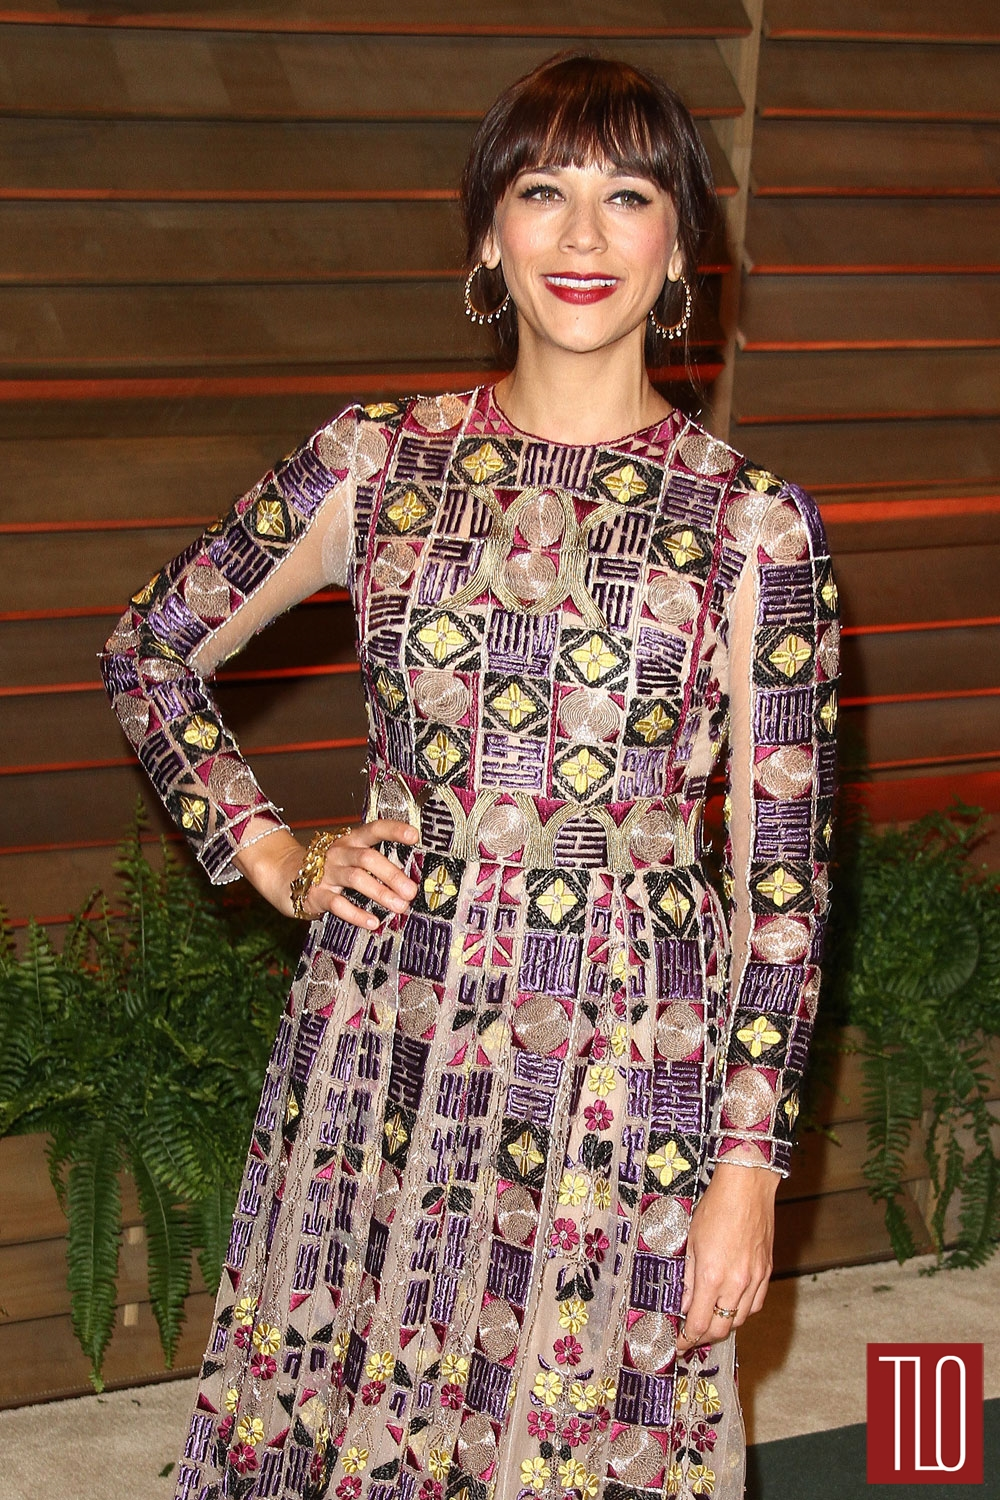 Rashida-Jones-Valentino-Oscars-2014-Vanity-Fair-Party-Tom-Lorenzo-Site-TLO (1)